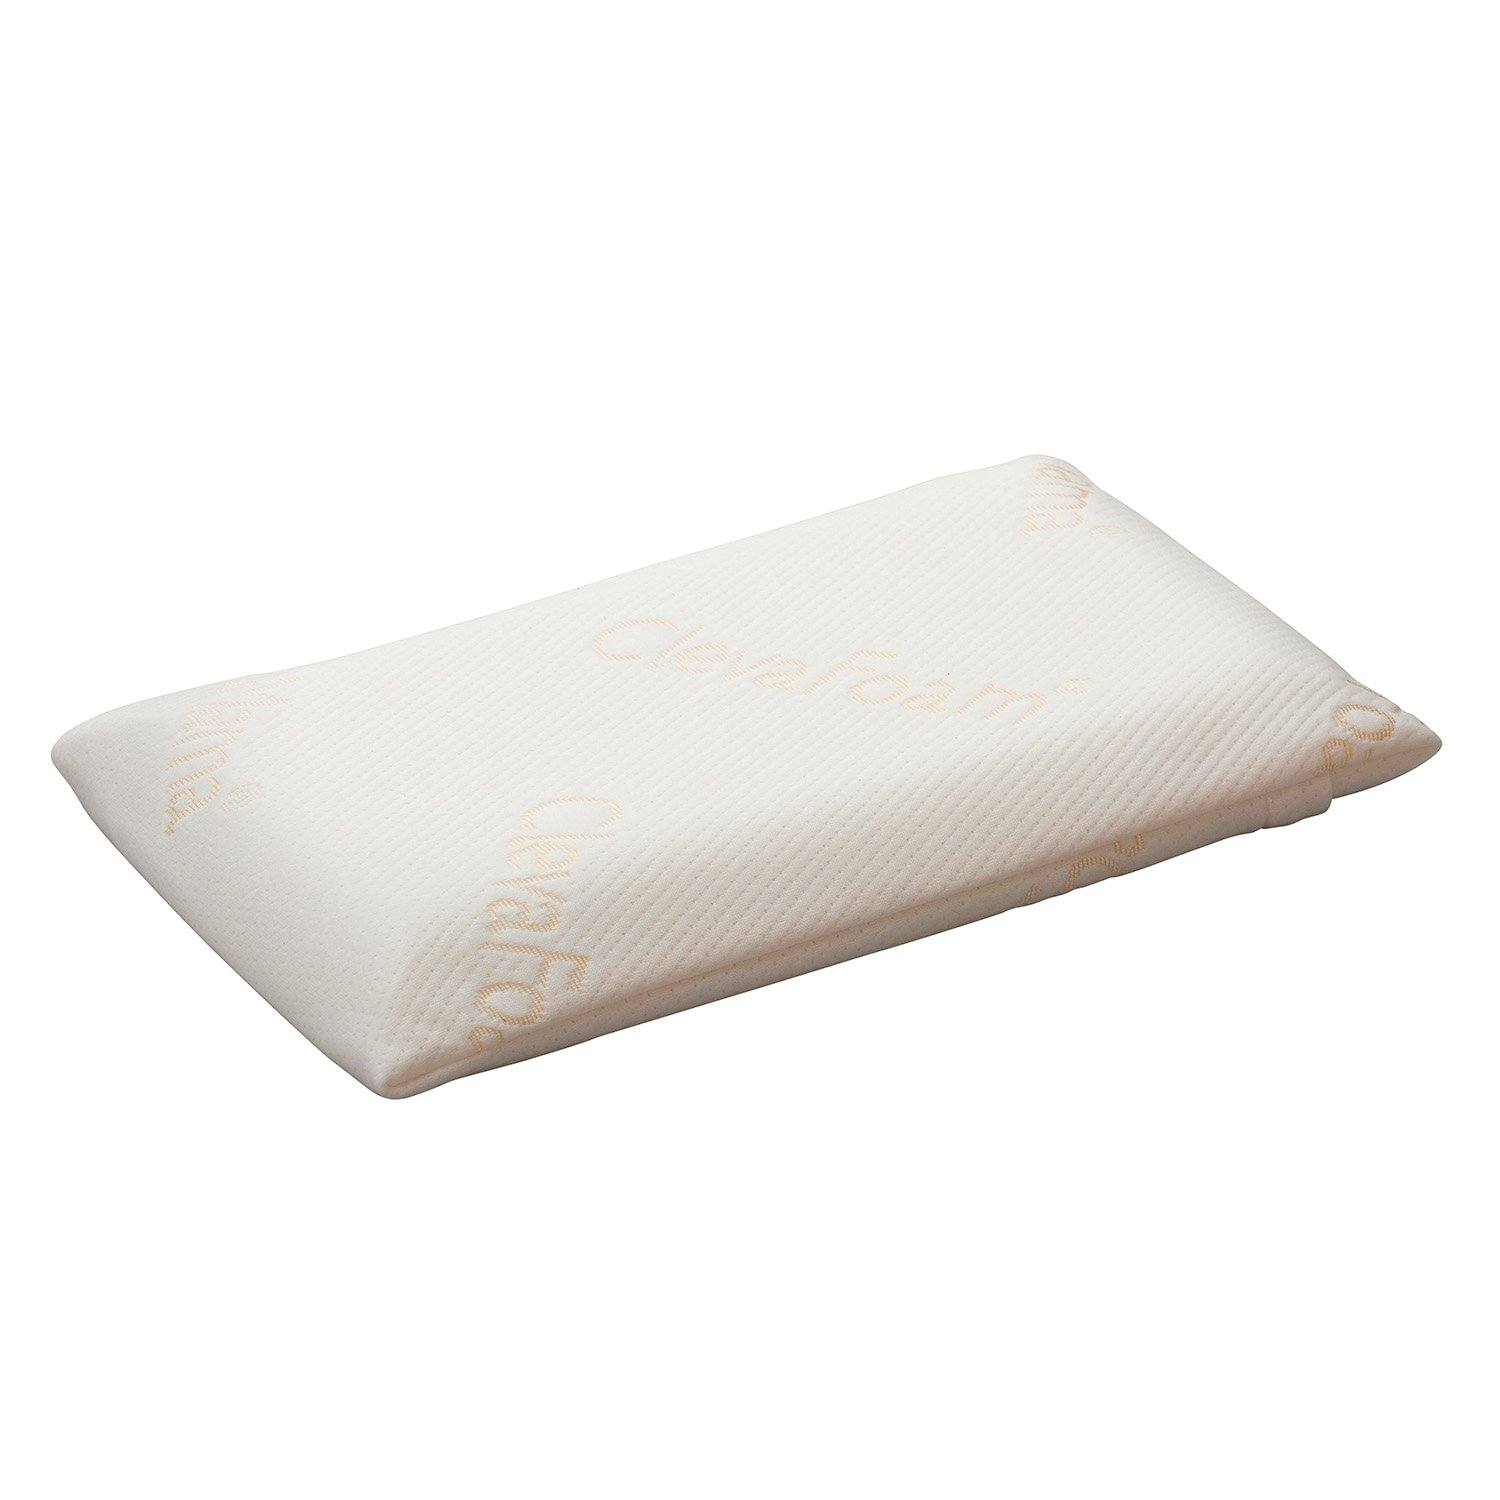 Clevamama Foam Toddler Pillow - Breathable, Hypoallergenic and Prevents Flat Head Syndrome (+12 months)